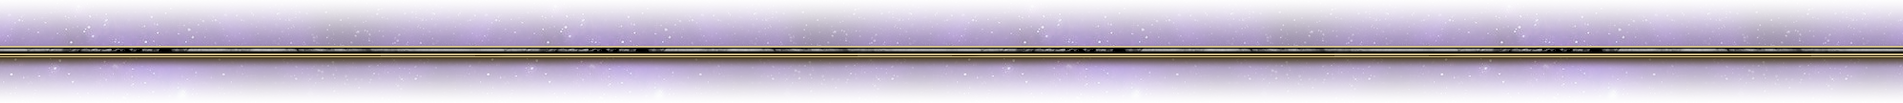 spacing-border-DOUBLE-1903.png